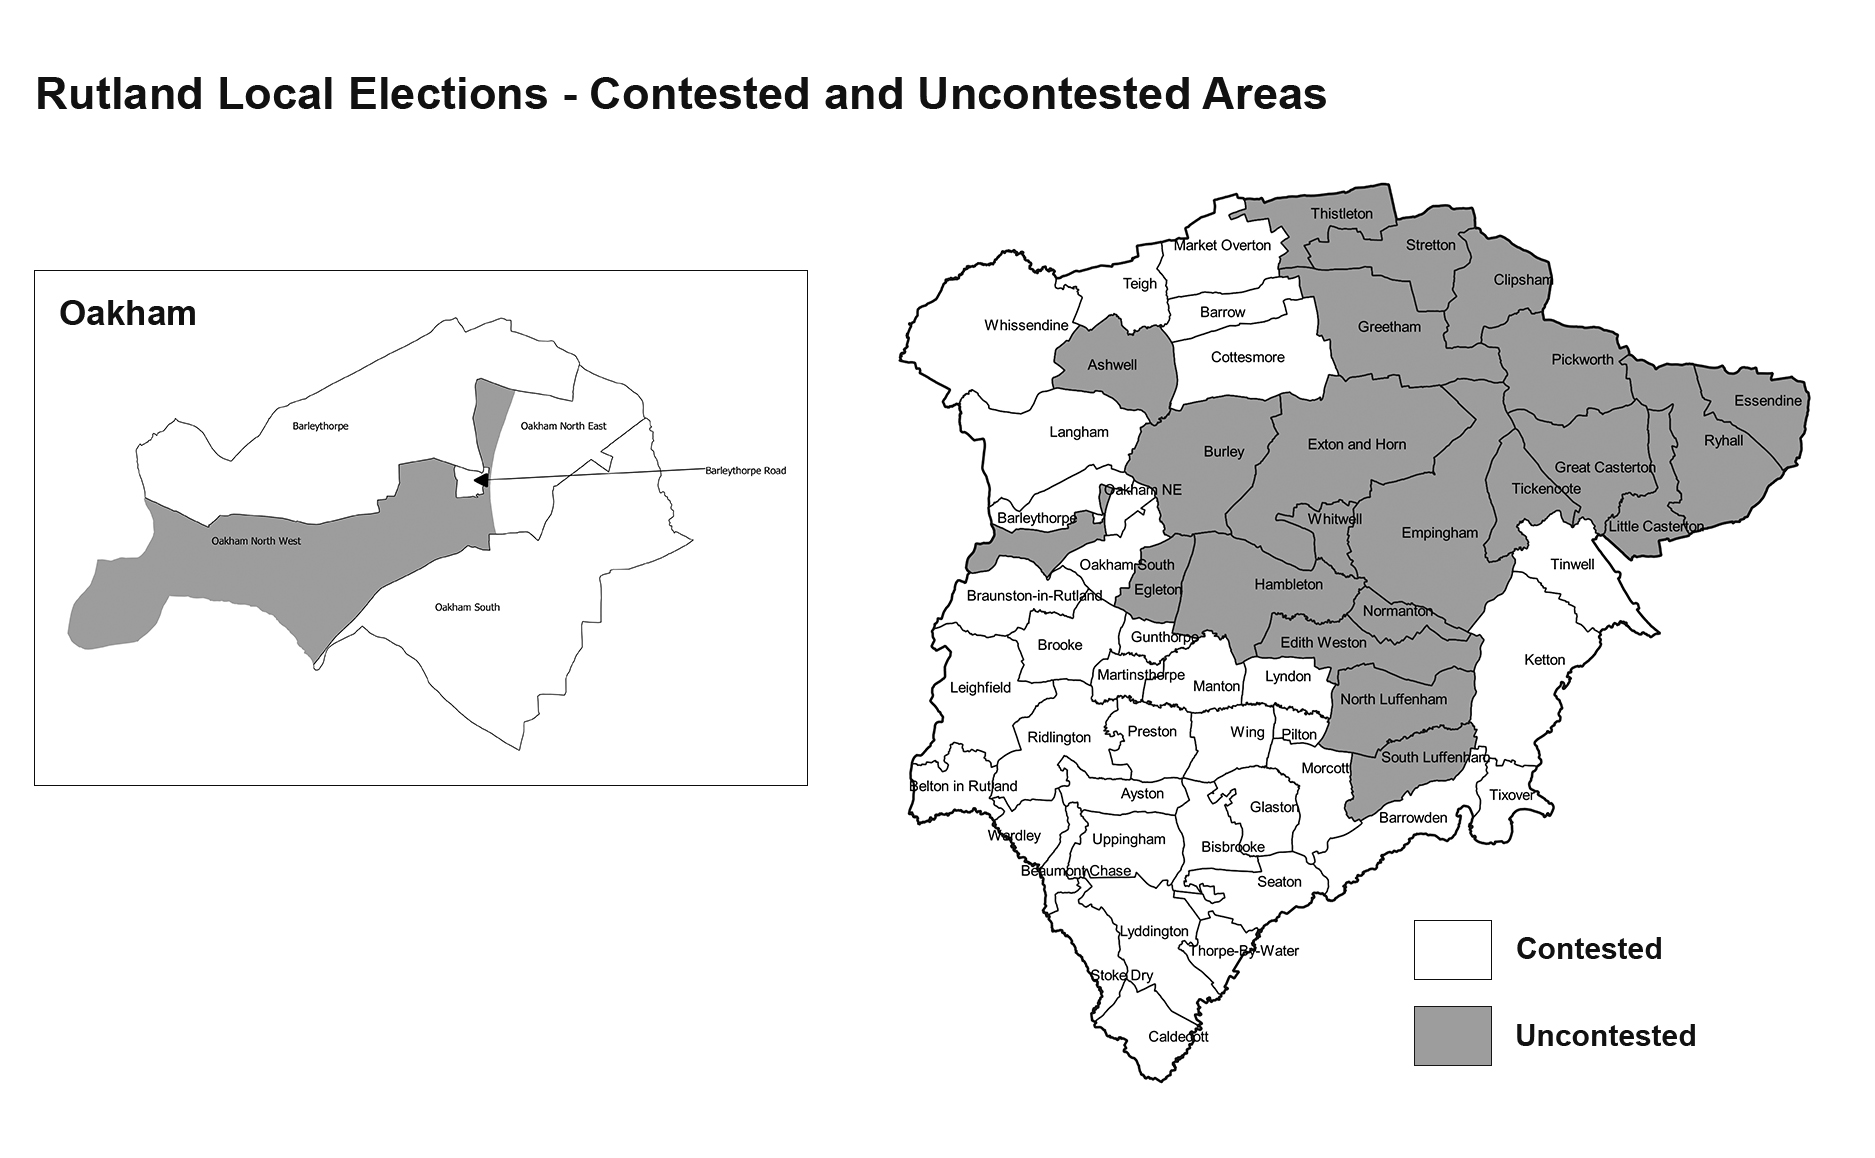 Contested and uncontested areas